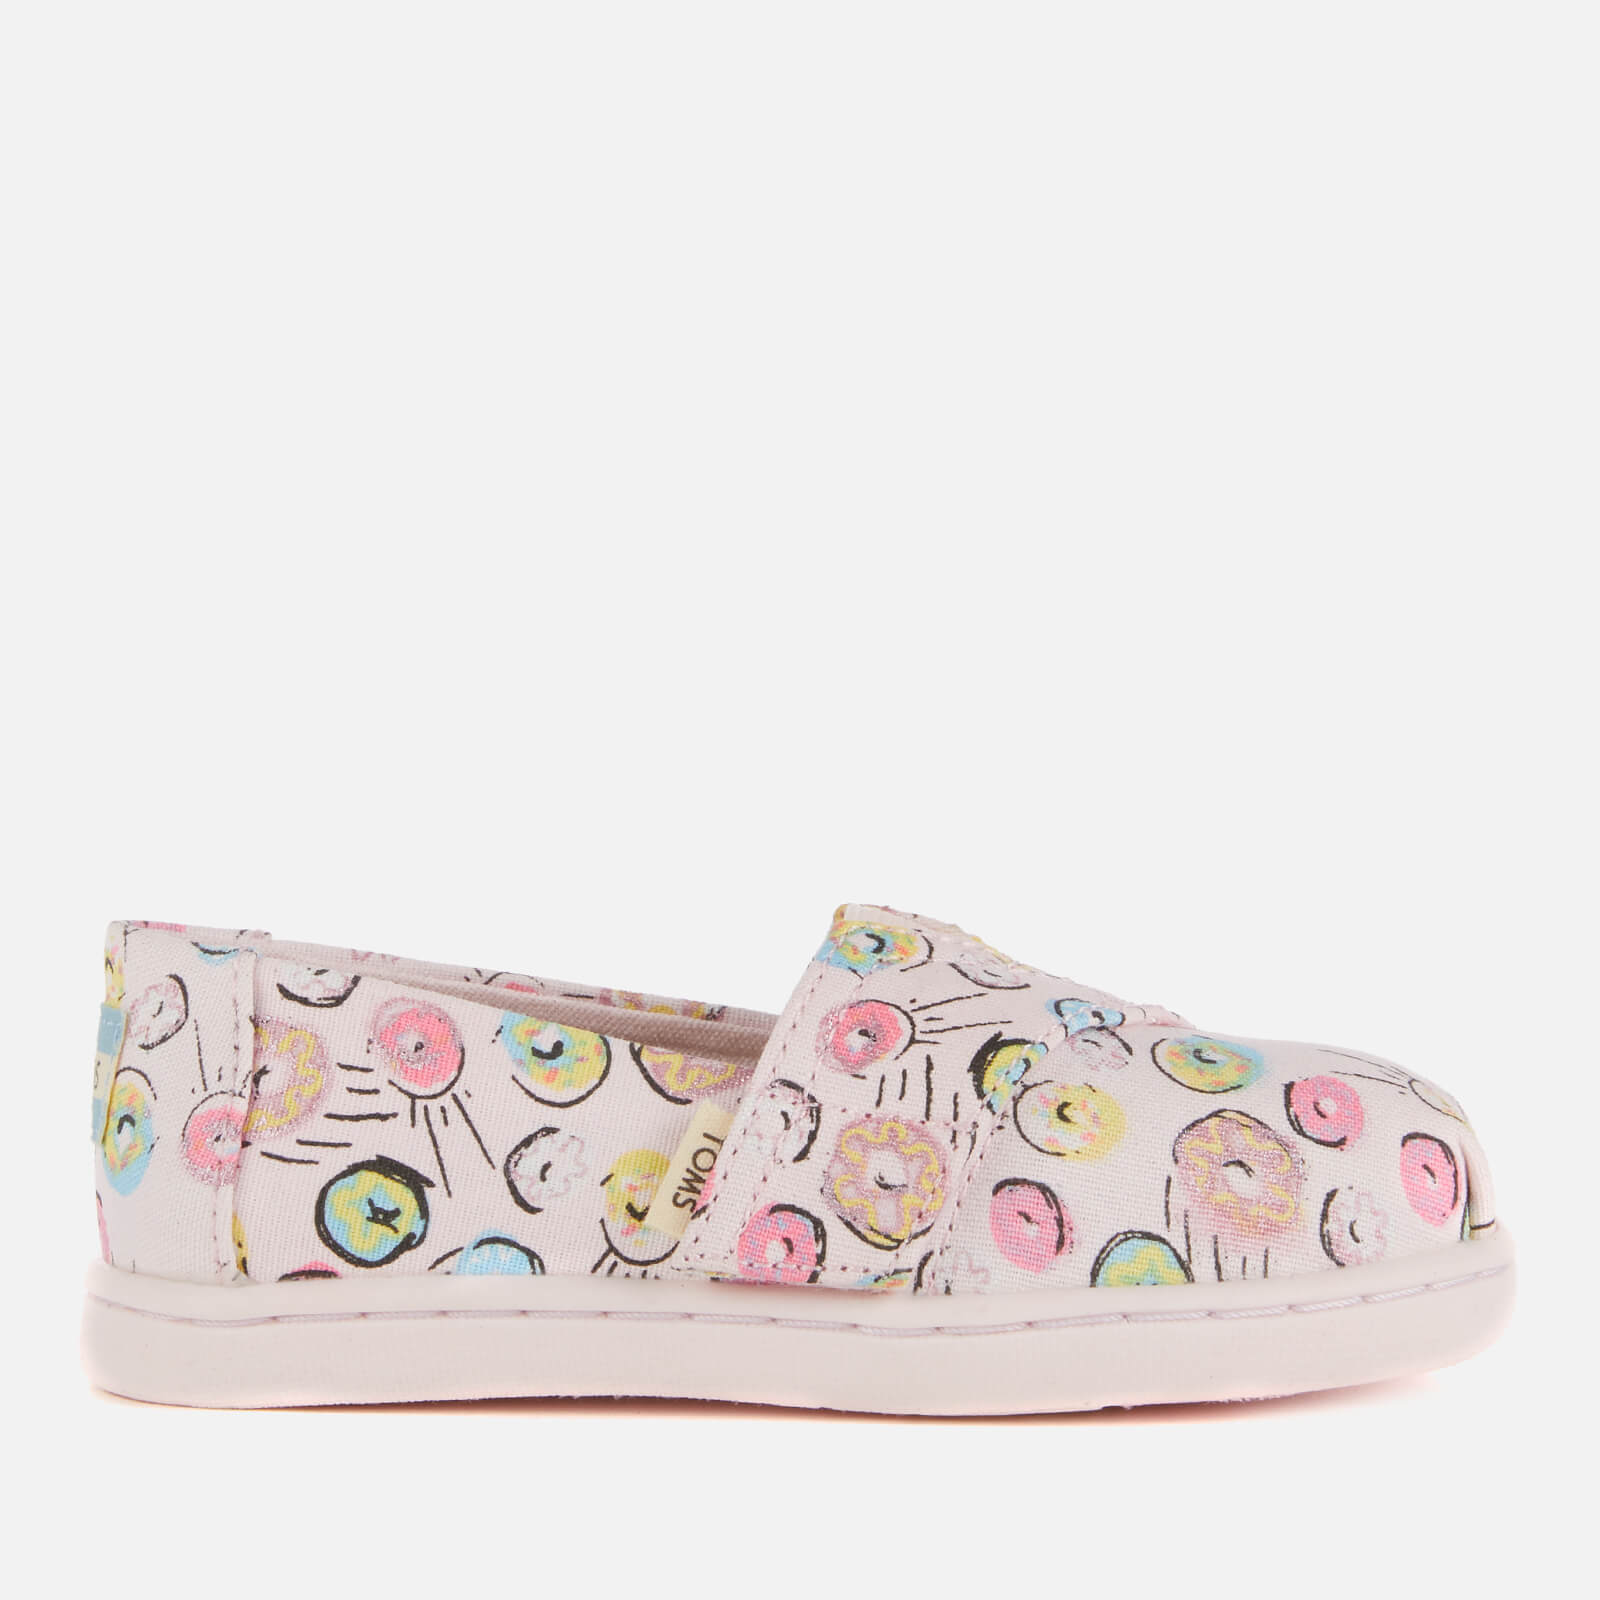 056f107cdbc TOMS Toddlers' Alpargata Vegan Slip-On Pumps - Pink Donuts Junior Clothing  | TheHut.com